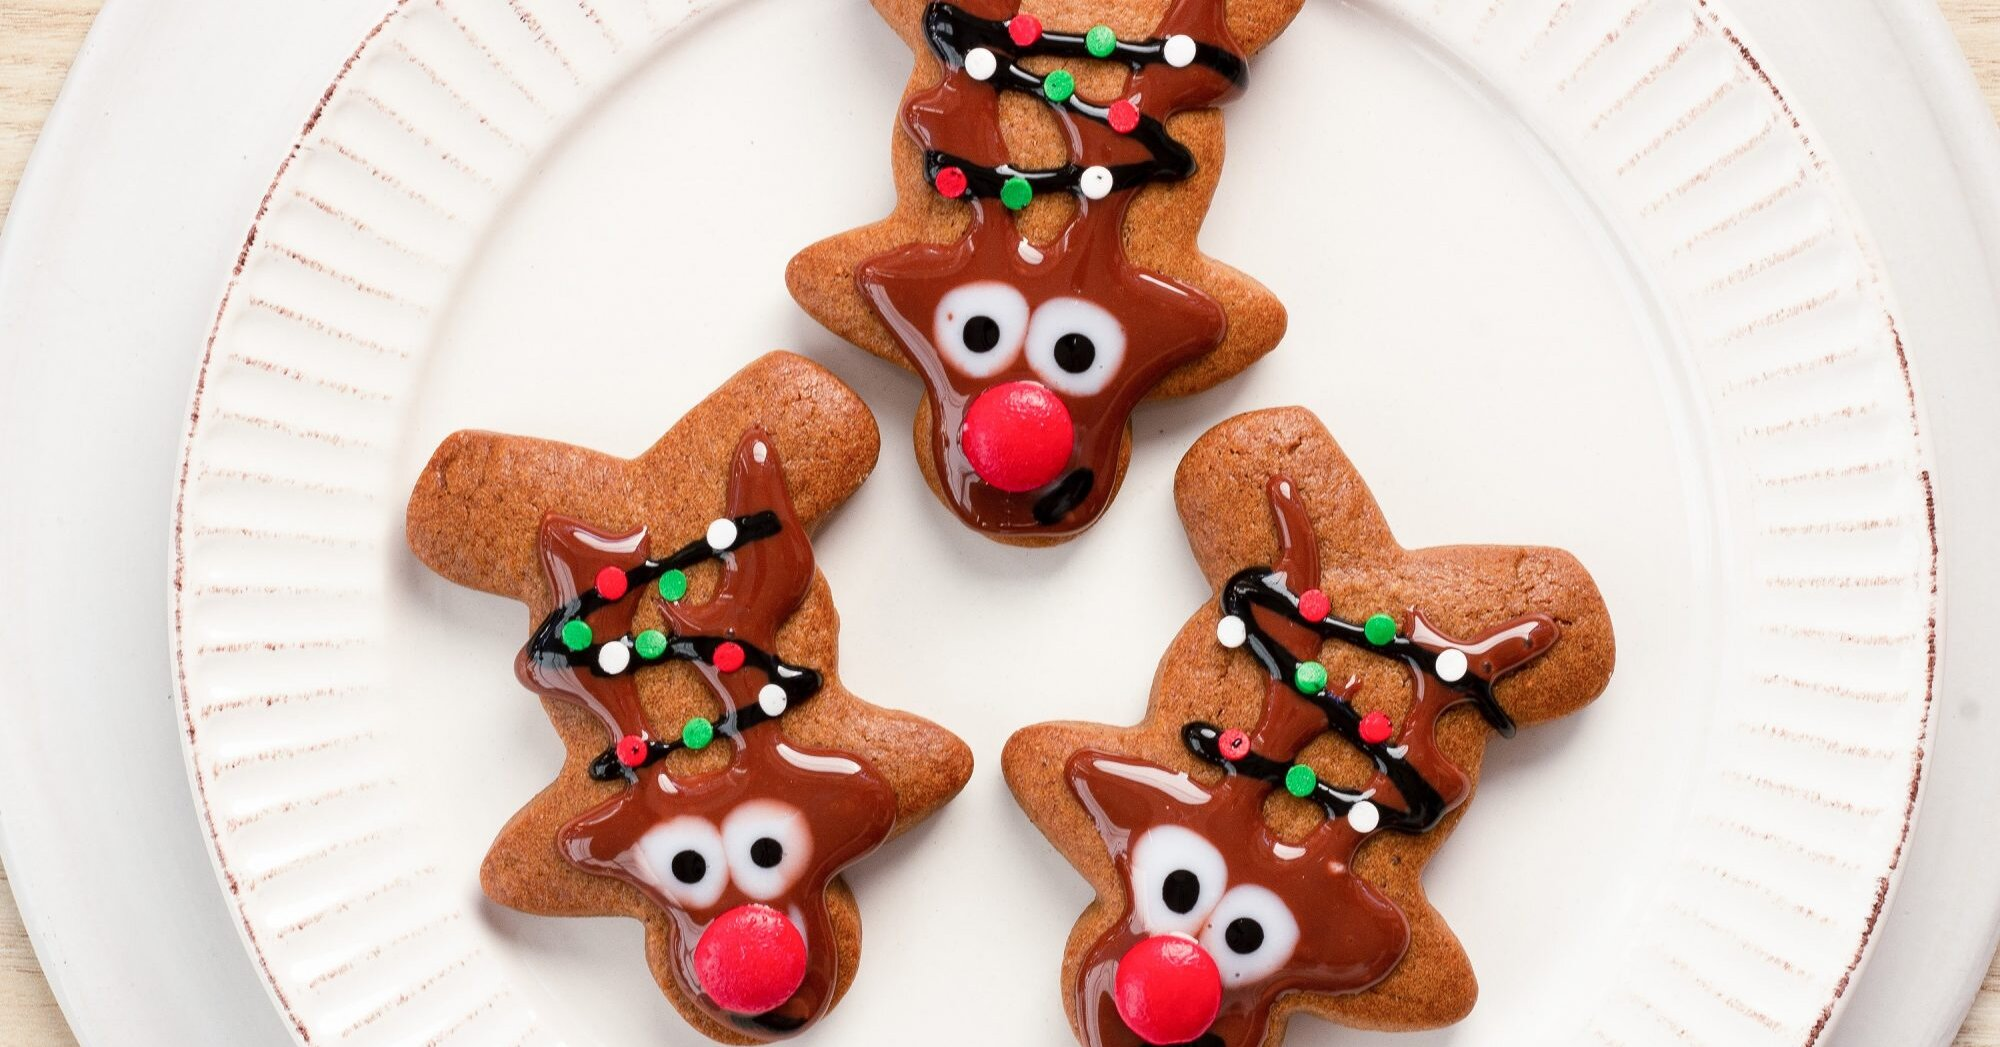 Turn Gingerbread Men Into Reindeer With This Clever Decorating Trick